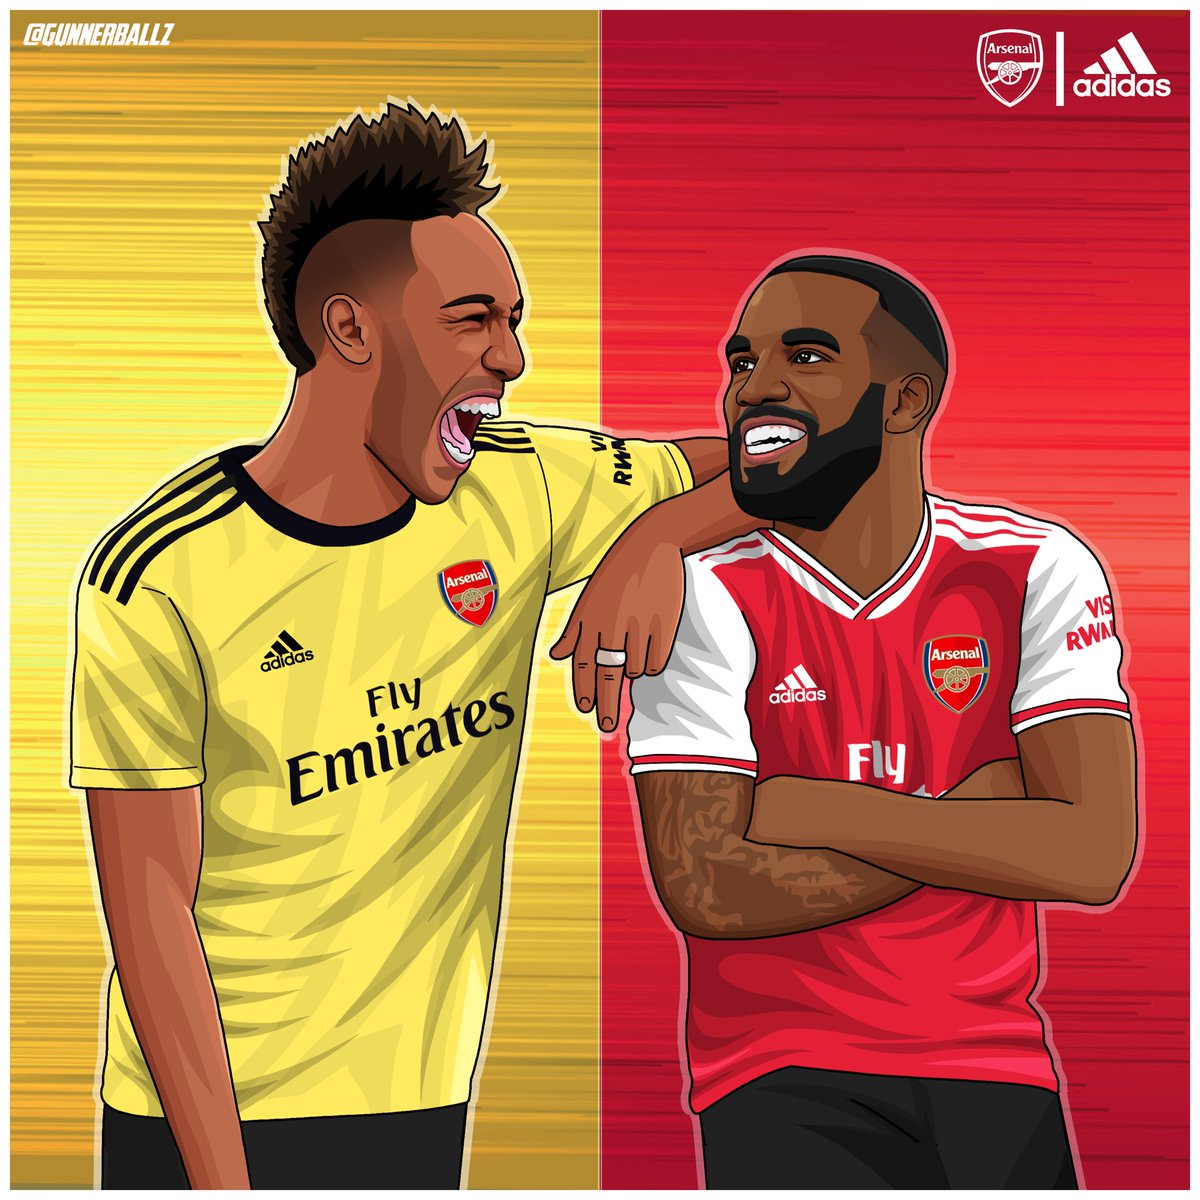 Adidas have absolutely smashed it out of the park with these new kits! Pure fire!   Likes and rts greatly appreciated!   #arsenal #afc #aubameyang #lacazette #adidas #adidasarsenal #epl<br>http://pic.twitter.com/BrOMbj74e0